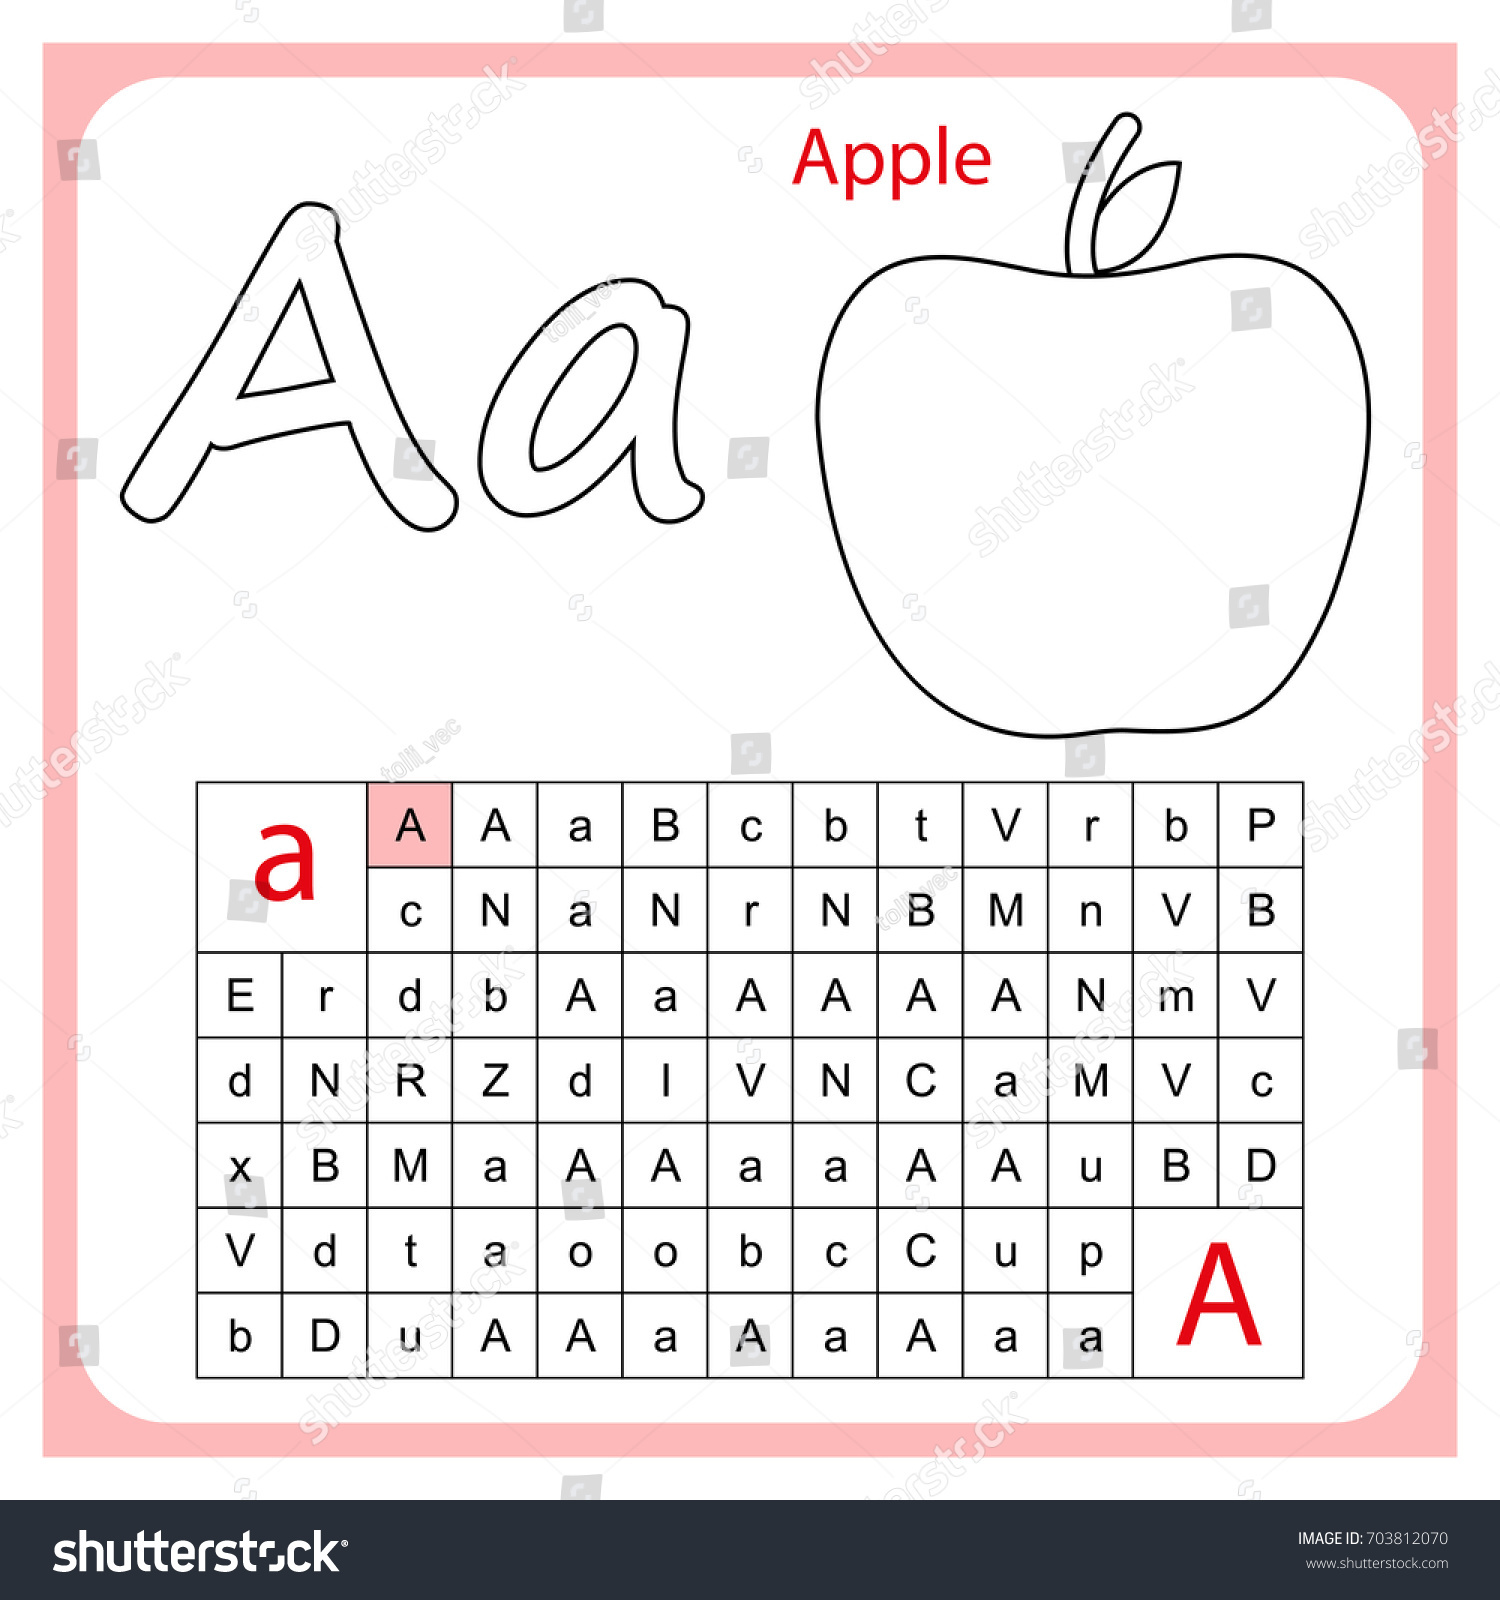 Worksheet Learning Alphabet Worksheet Preschool Children